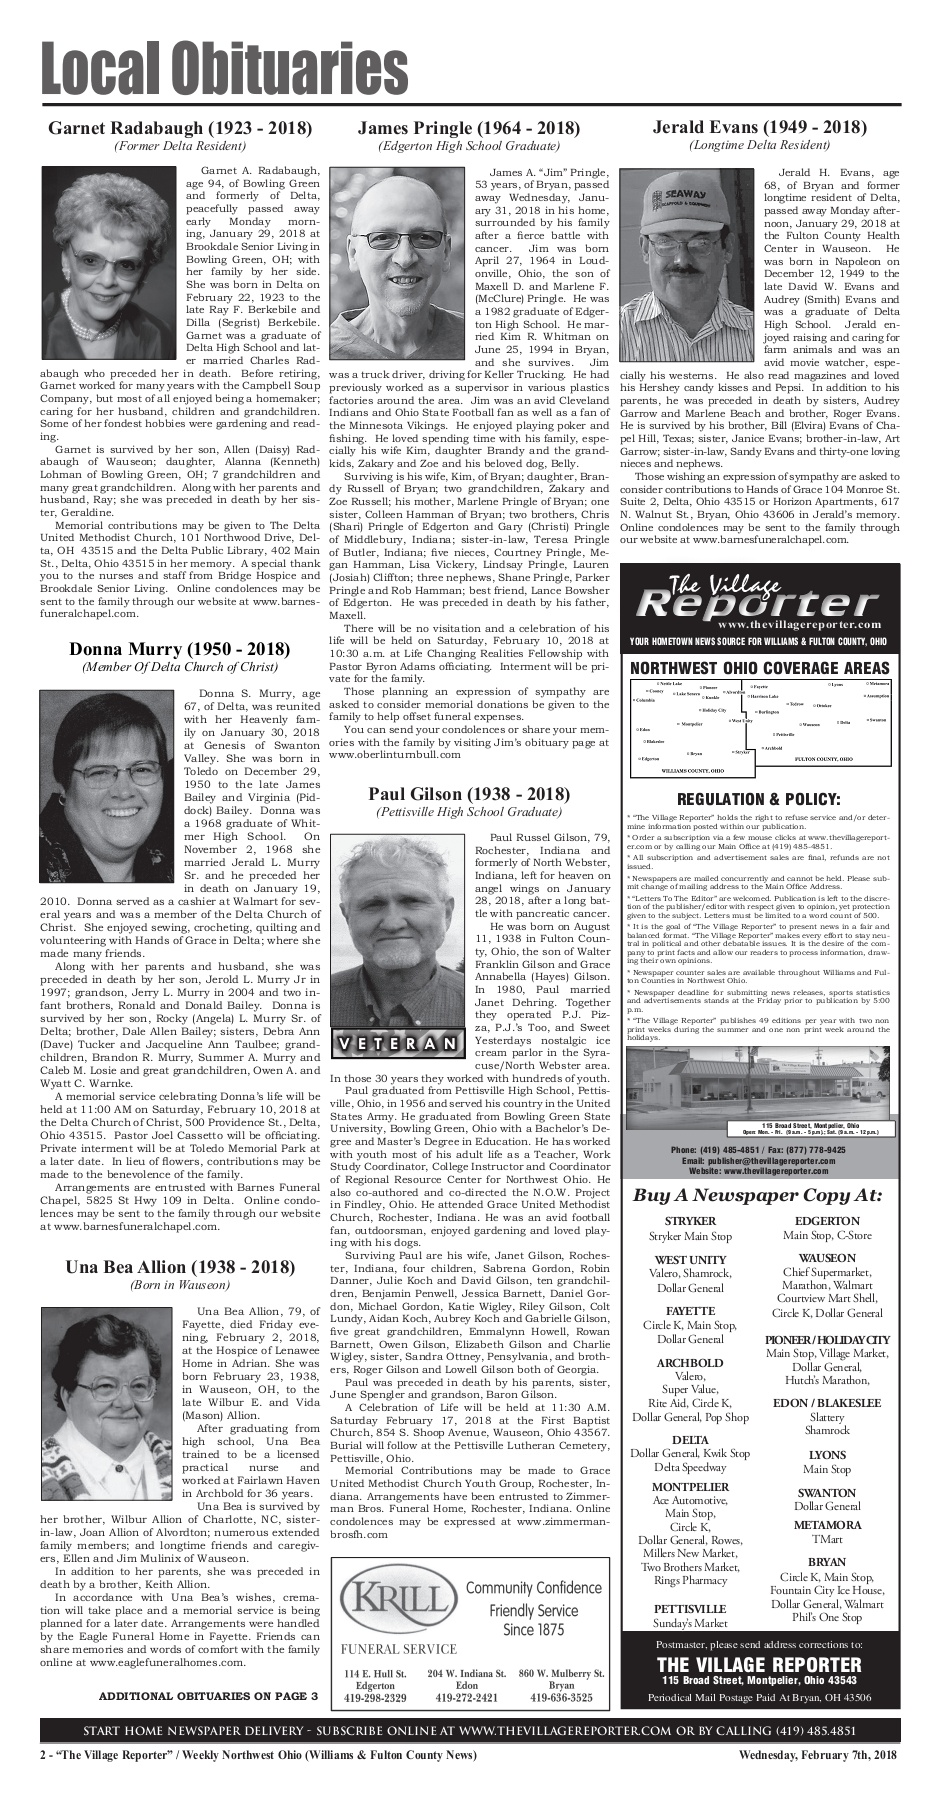 The Village Reporter - February 7th, 2018 Pages 1 - 42